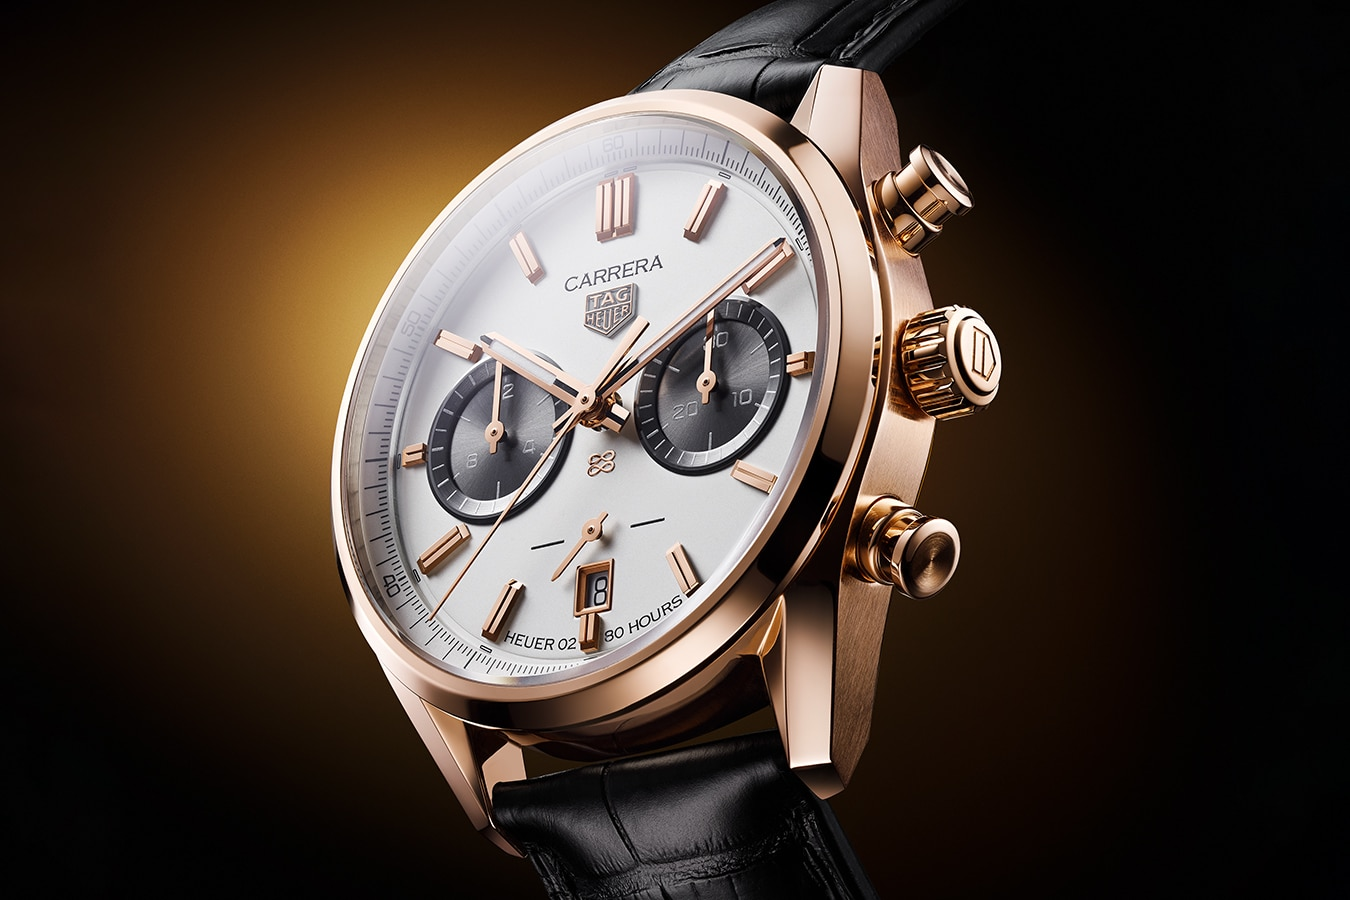 JACK HEUER'S BIRTHDAY LIMITED EDITION